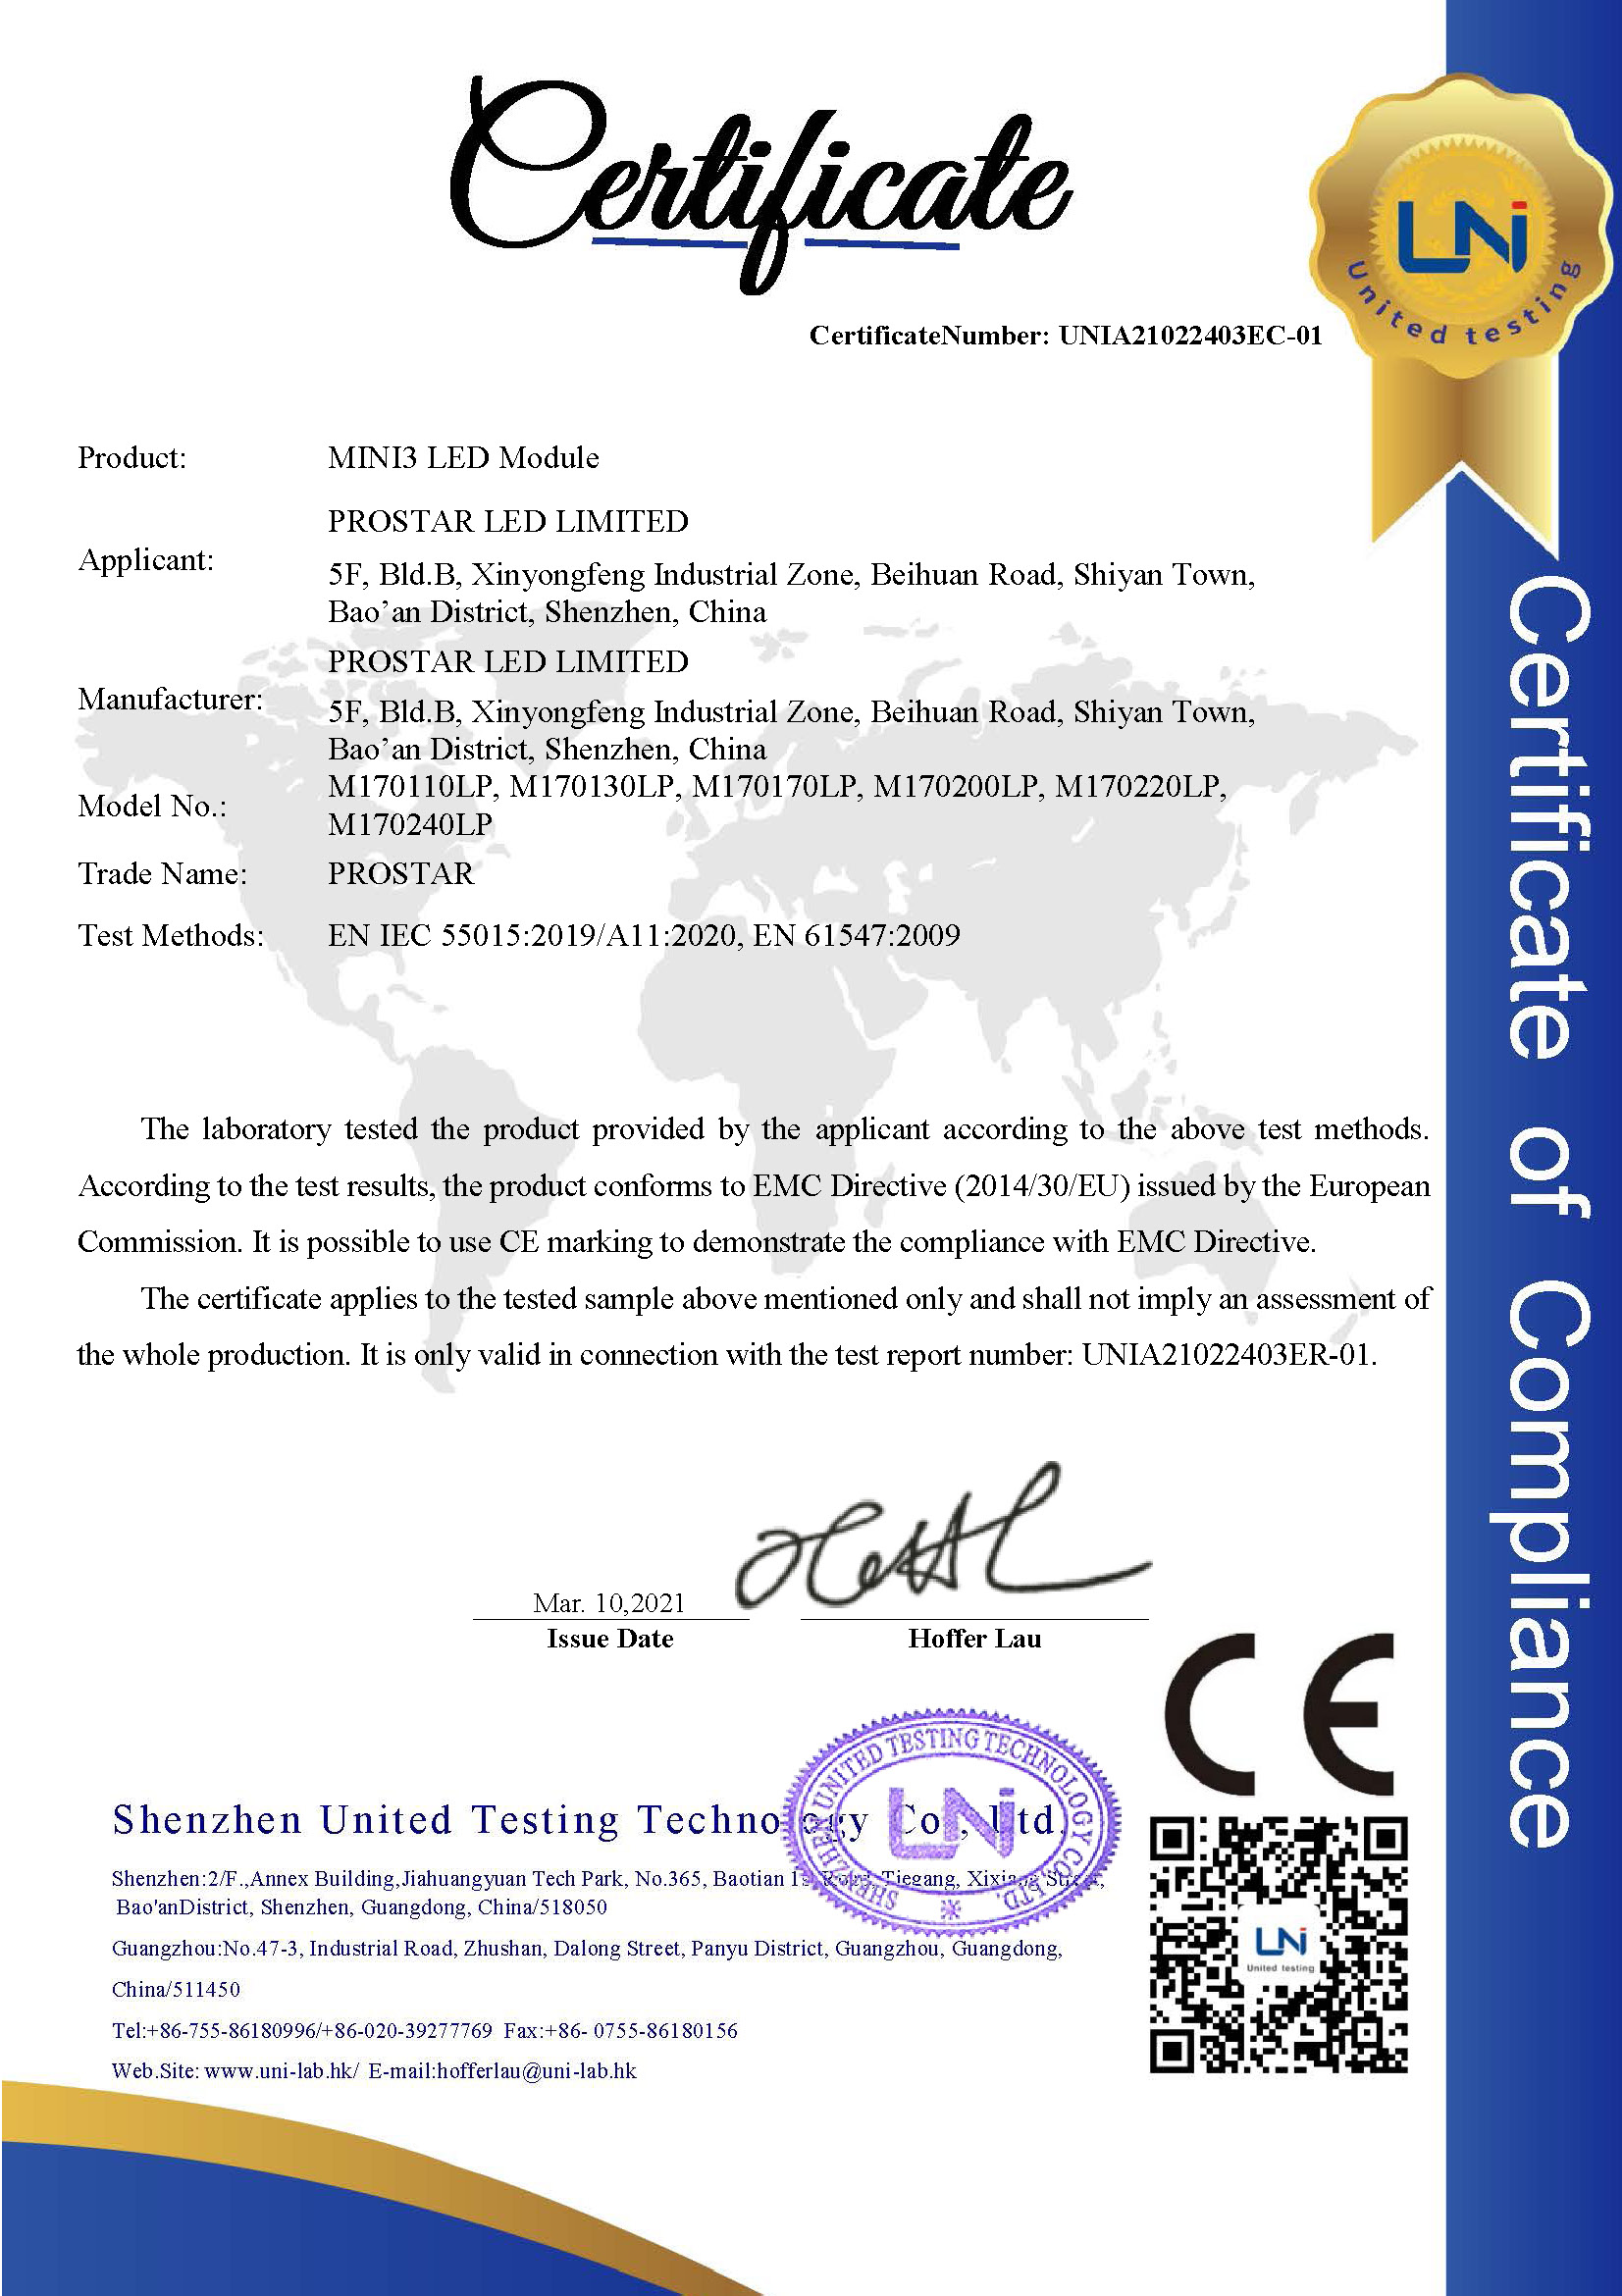 LED Module EMC Certificate and Test Report Completed